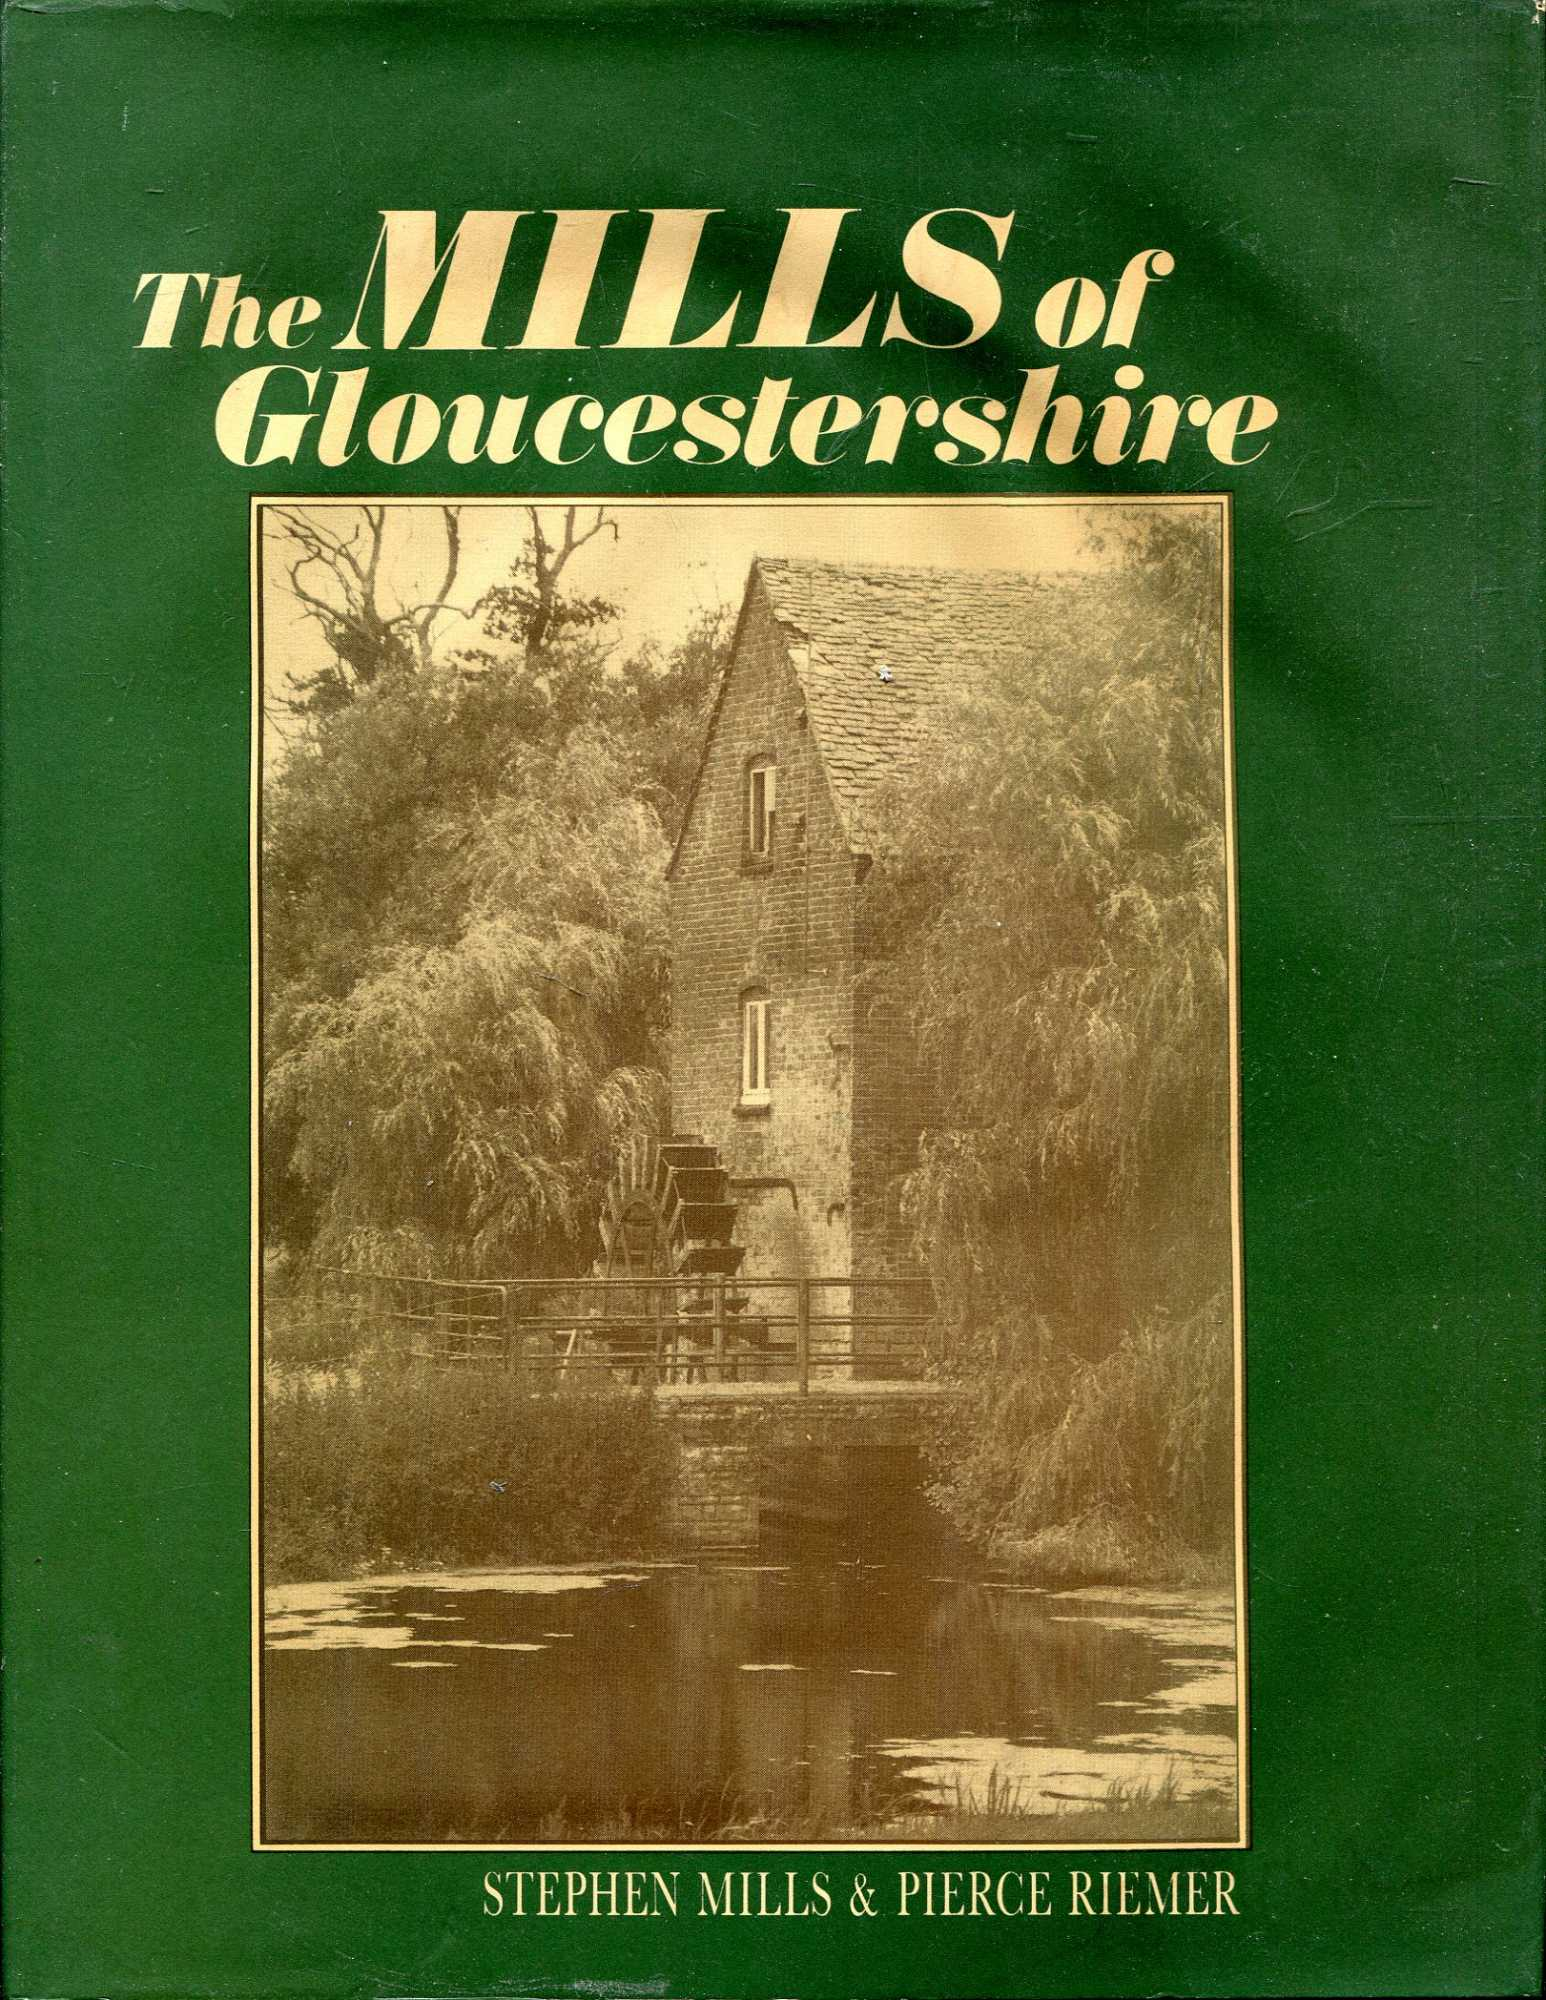 Image for The Mills of Gloucestershire: Small and large, steam and water driven, cloth and corn, silk and iron - the buildings and the people of the county's past